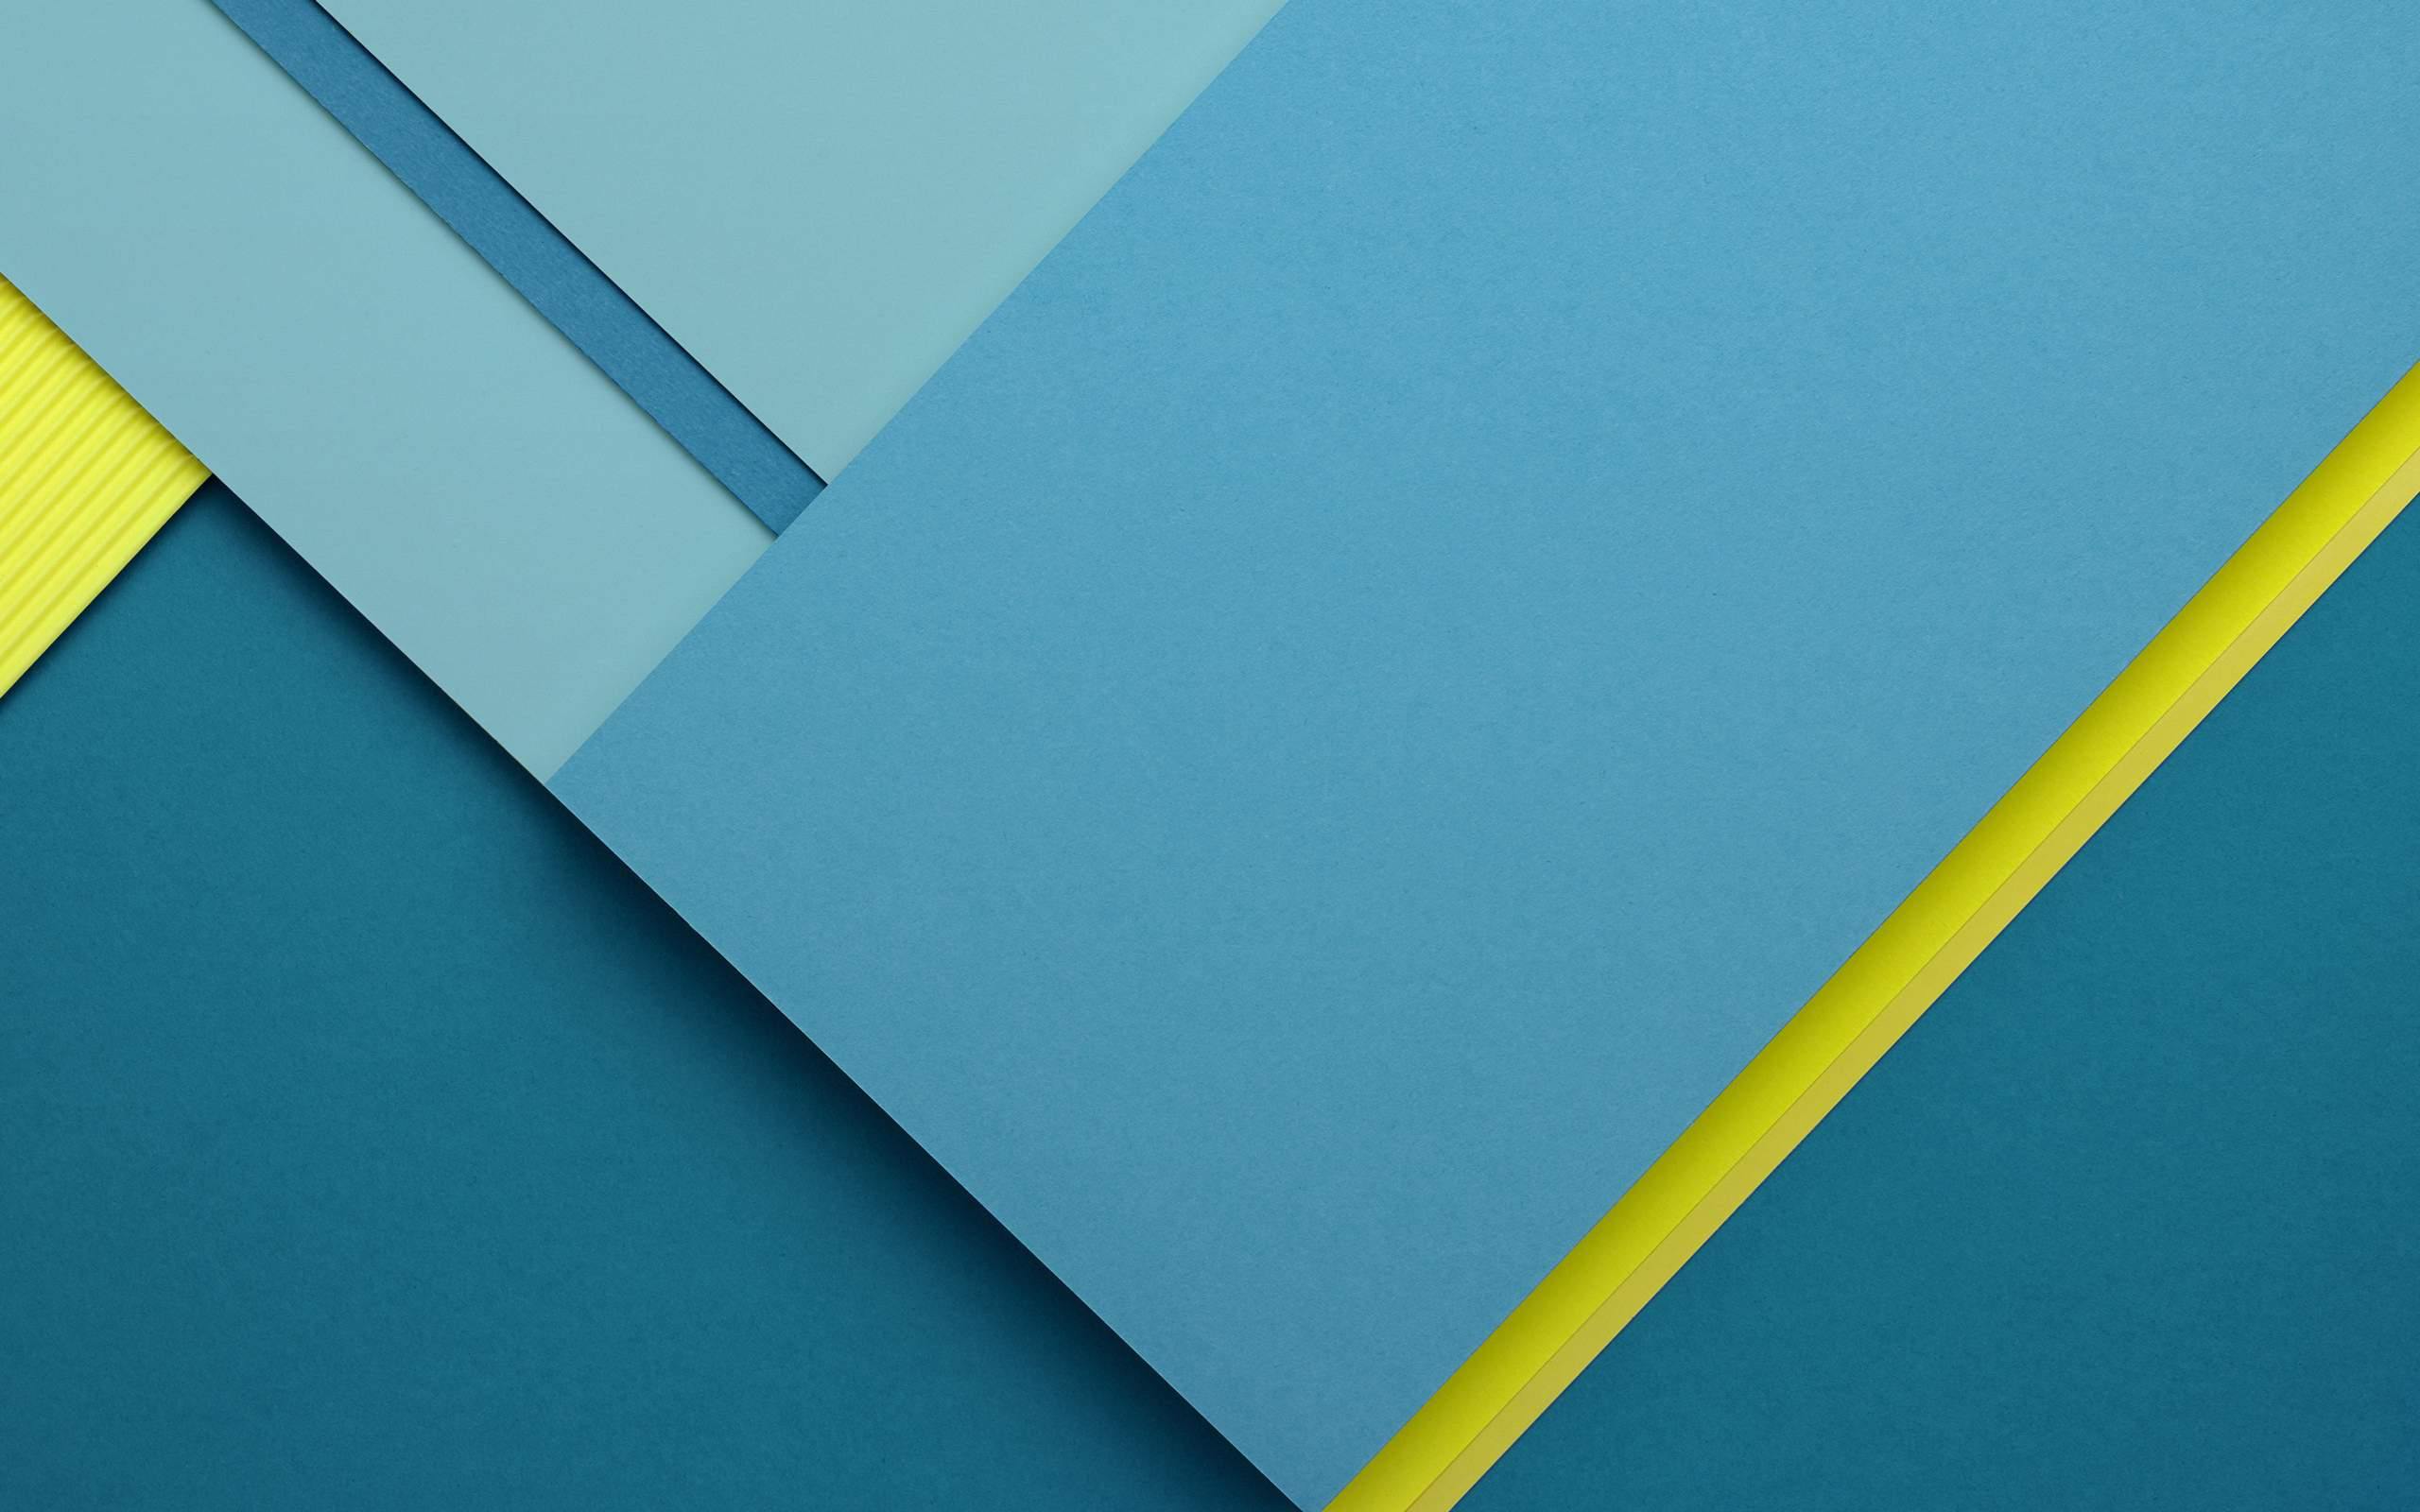 Chrome OS to Get New Default Wallpaper Full of Material Design 2560x1600